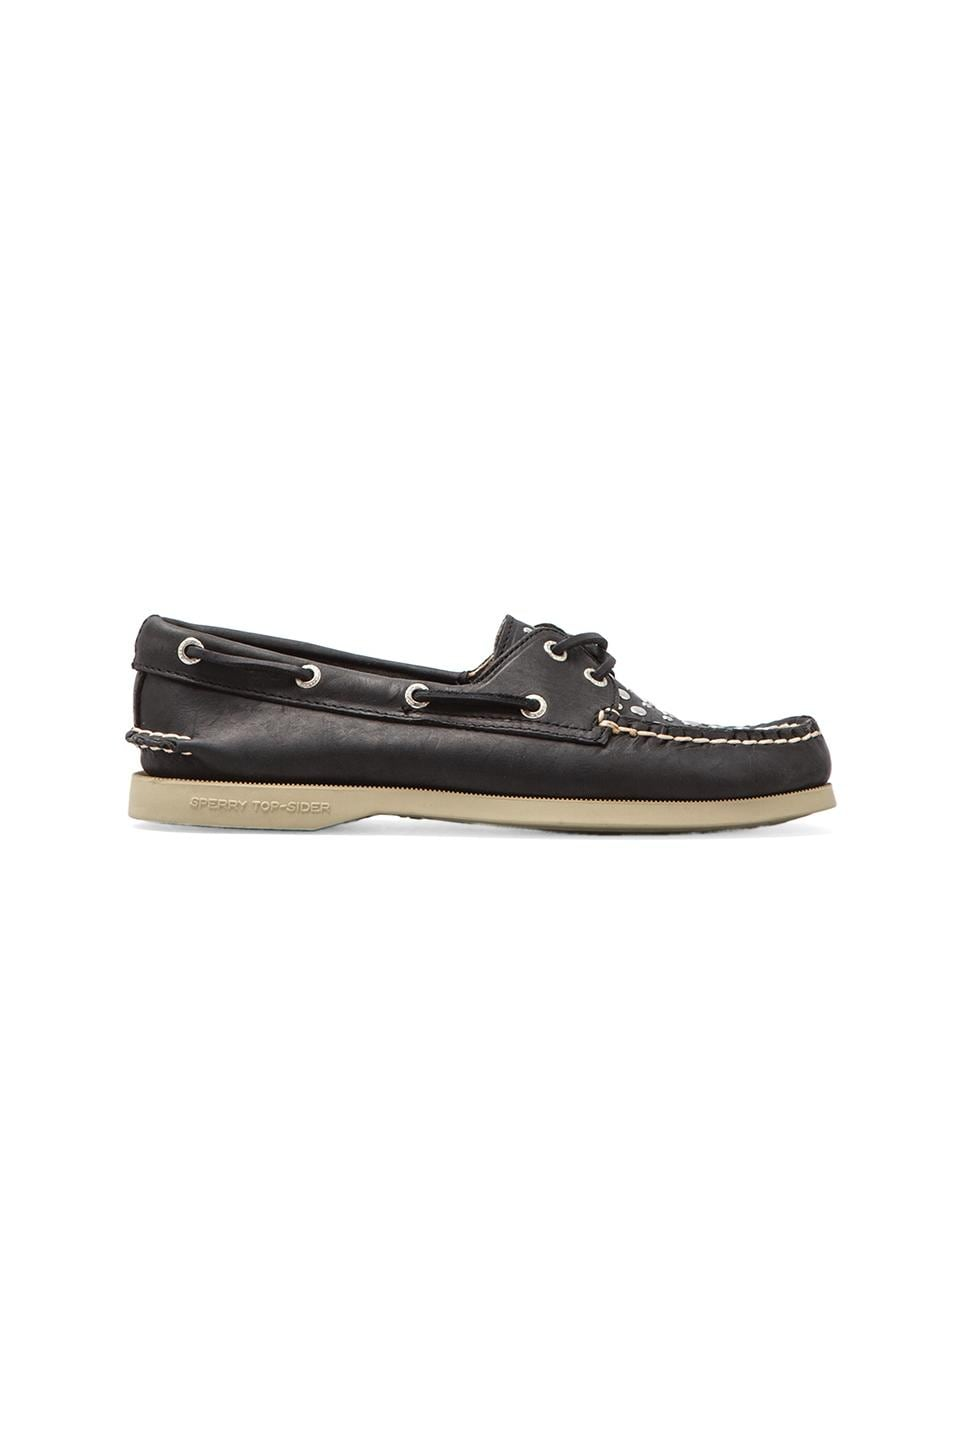 Sperry Top-Sider A/O 2-Eye in Black